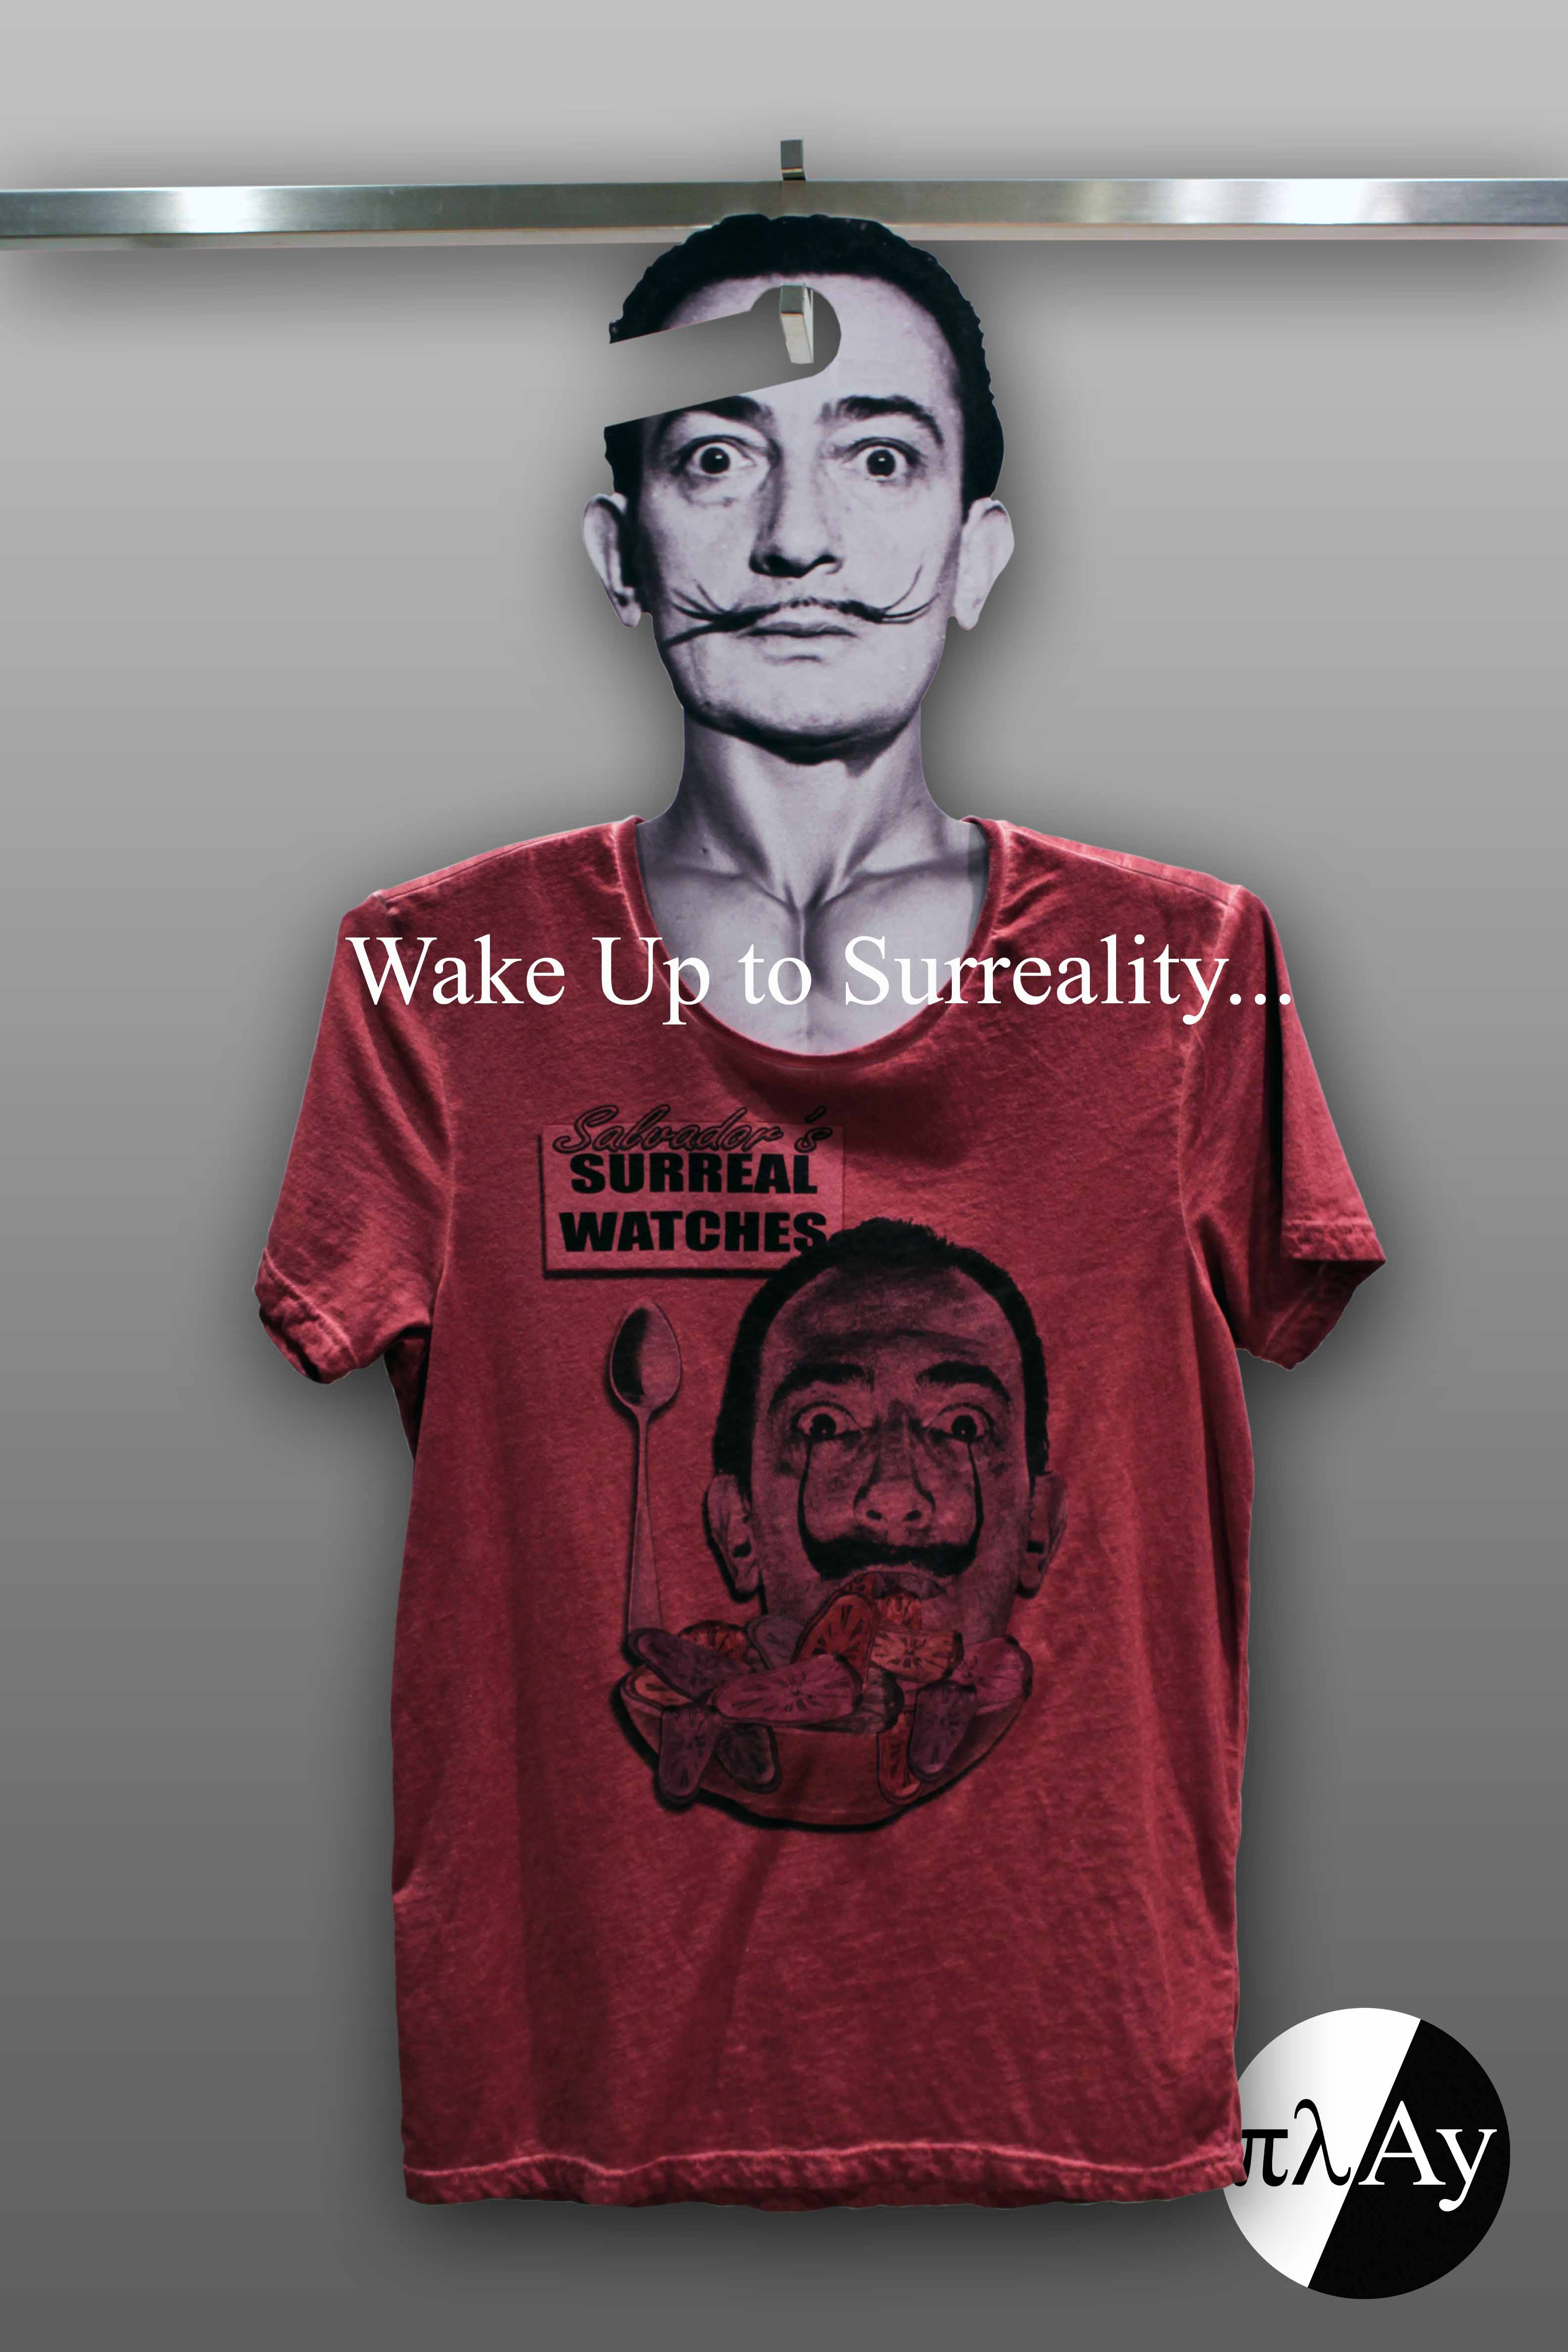 Wake up to Surreality play-shirts